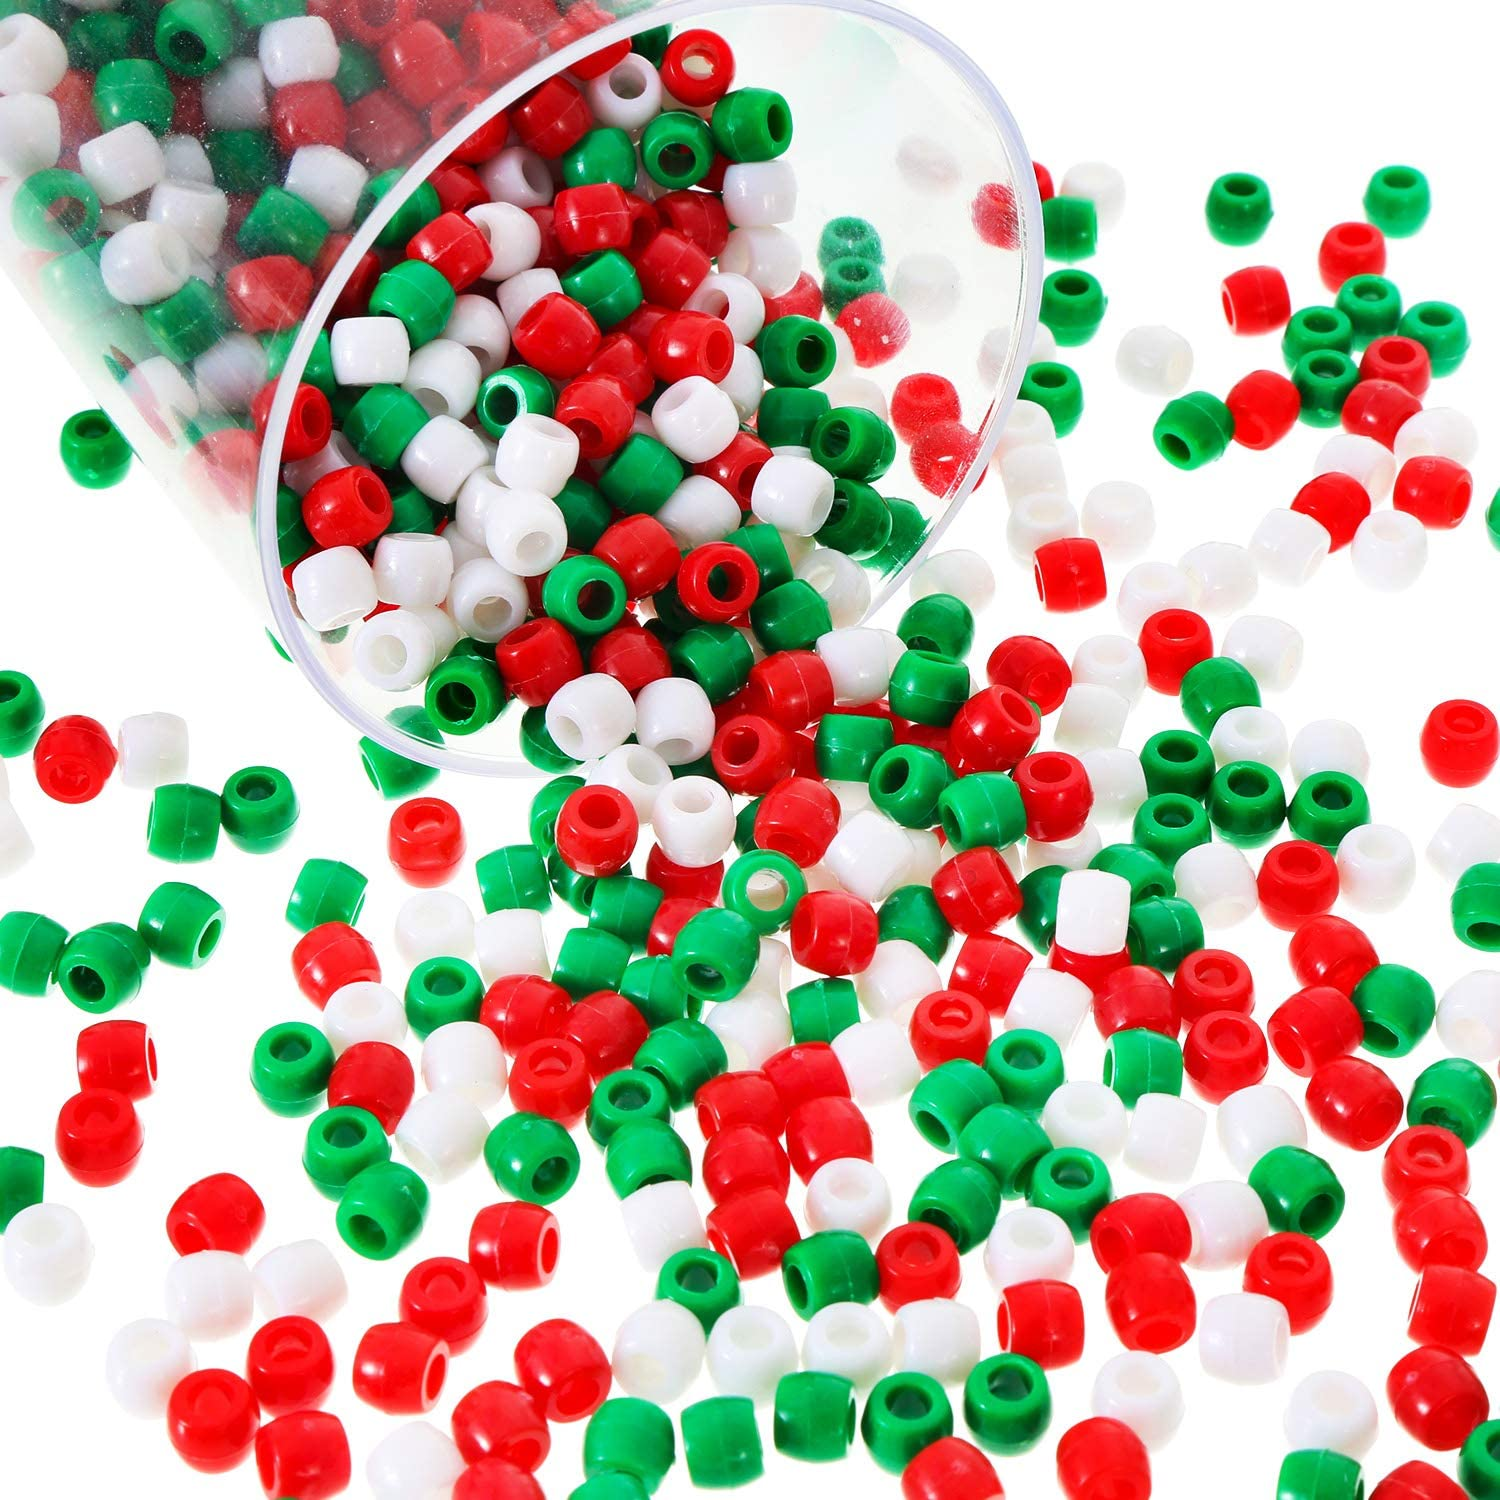 1000 Pieces Plastic Pony Beads Assorted Opaque Pony Beads Christmas Round Beads with Storage Box for Home Decor Craft (Red Green White)